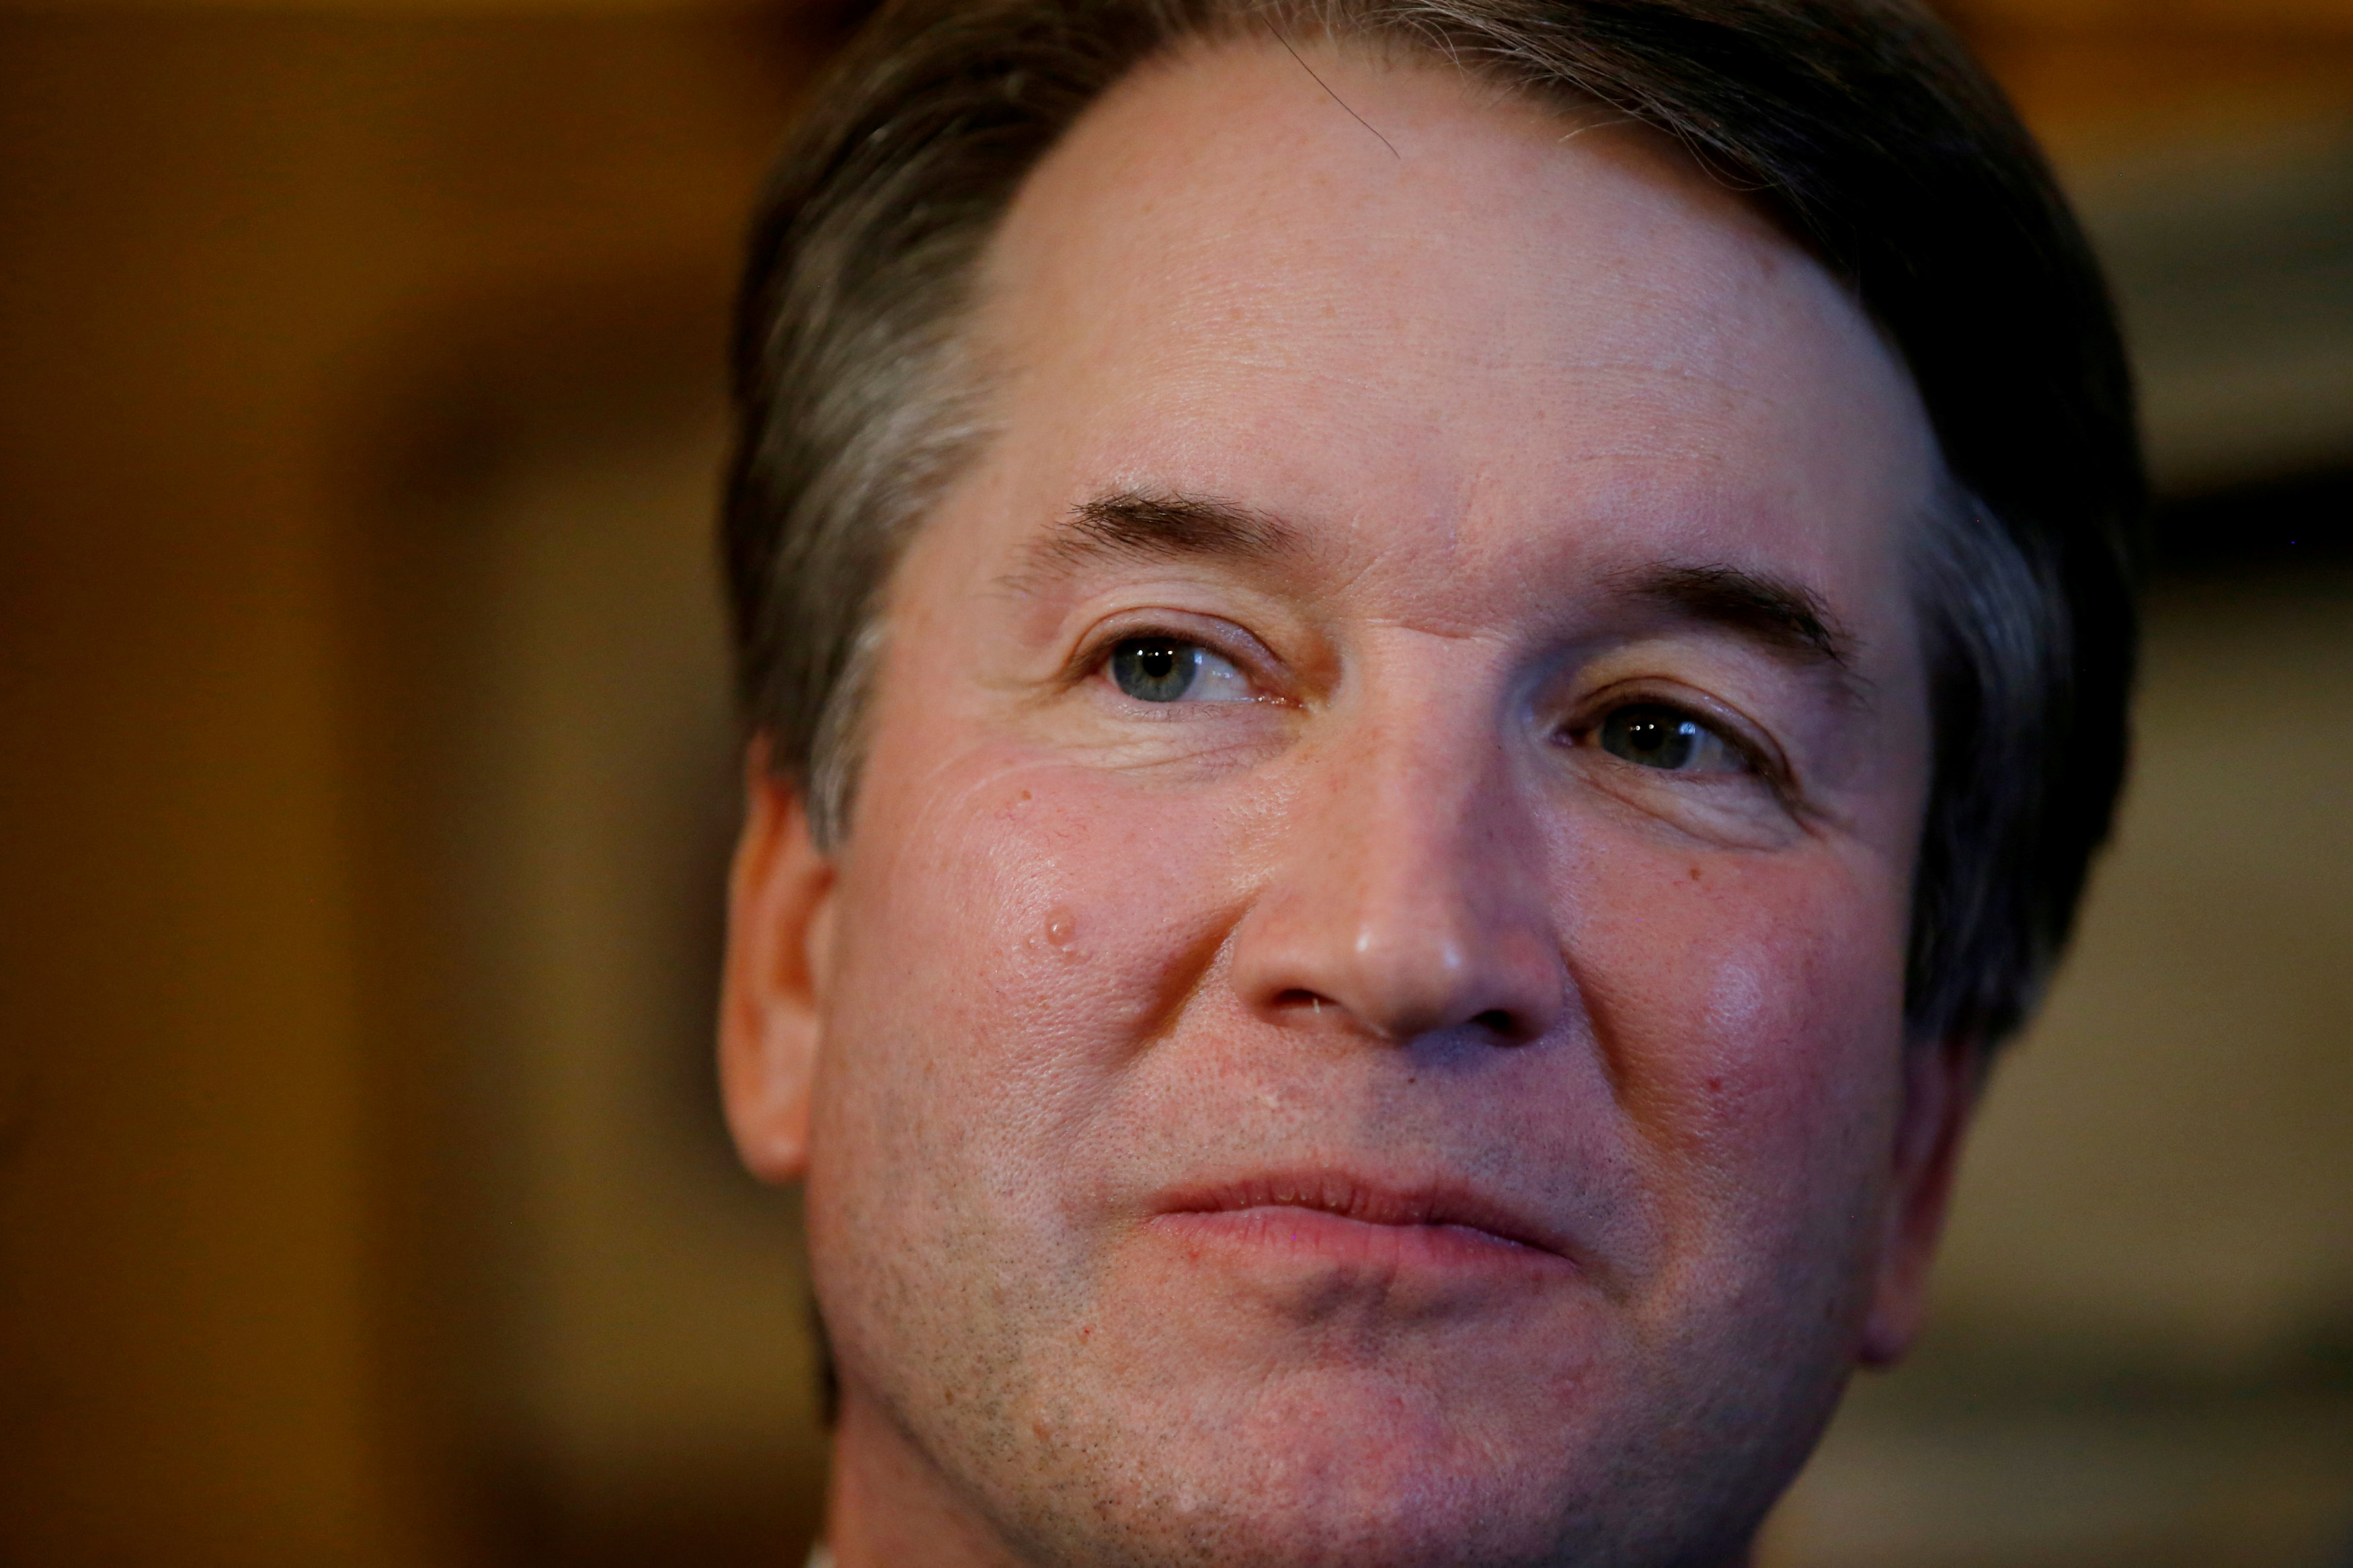 FILE PHOTO: Supreme Court Justice nominee Brett Kavanaugh pictured at his office in the Russell Senate Office Building in Washington, U.S., July 11, 2018. REUTERS/Leah Millis/File Photo